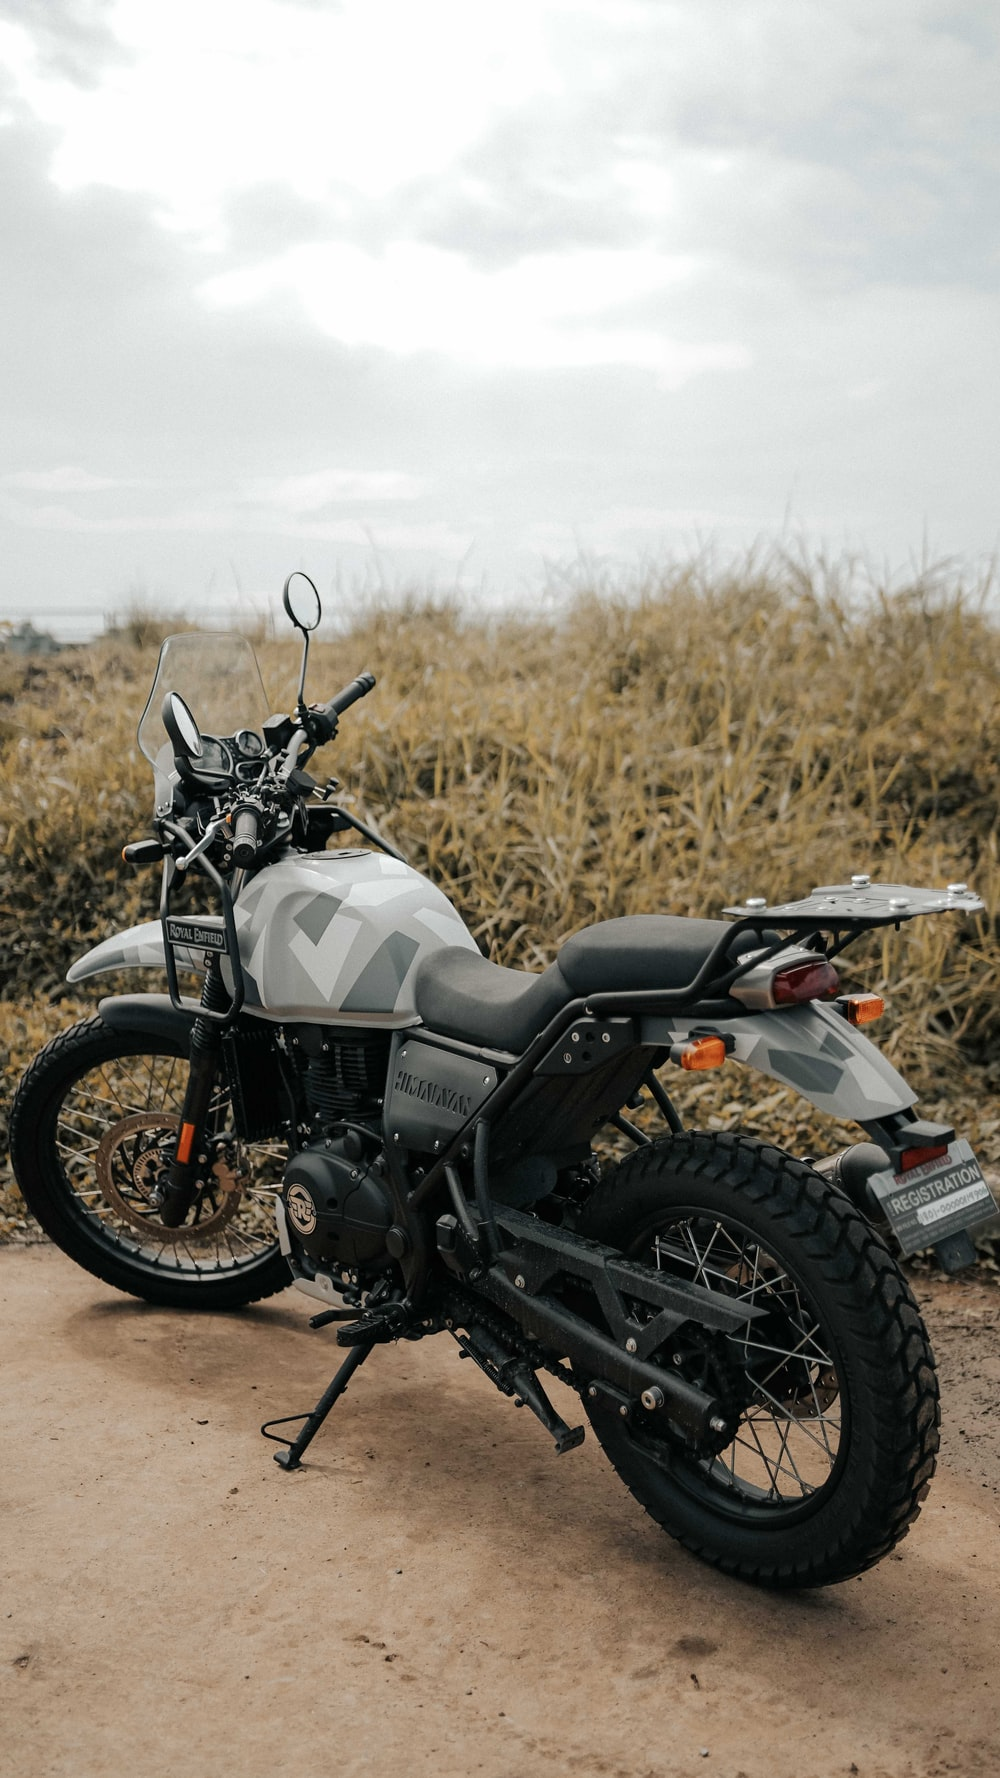 black and gray motorcycle on brown grass field during daytime